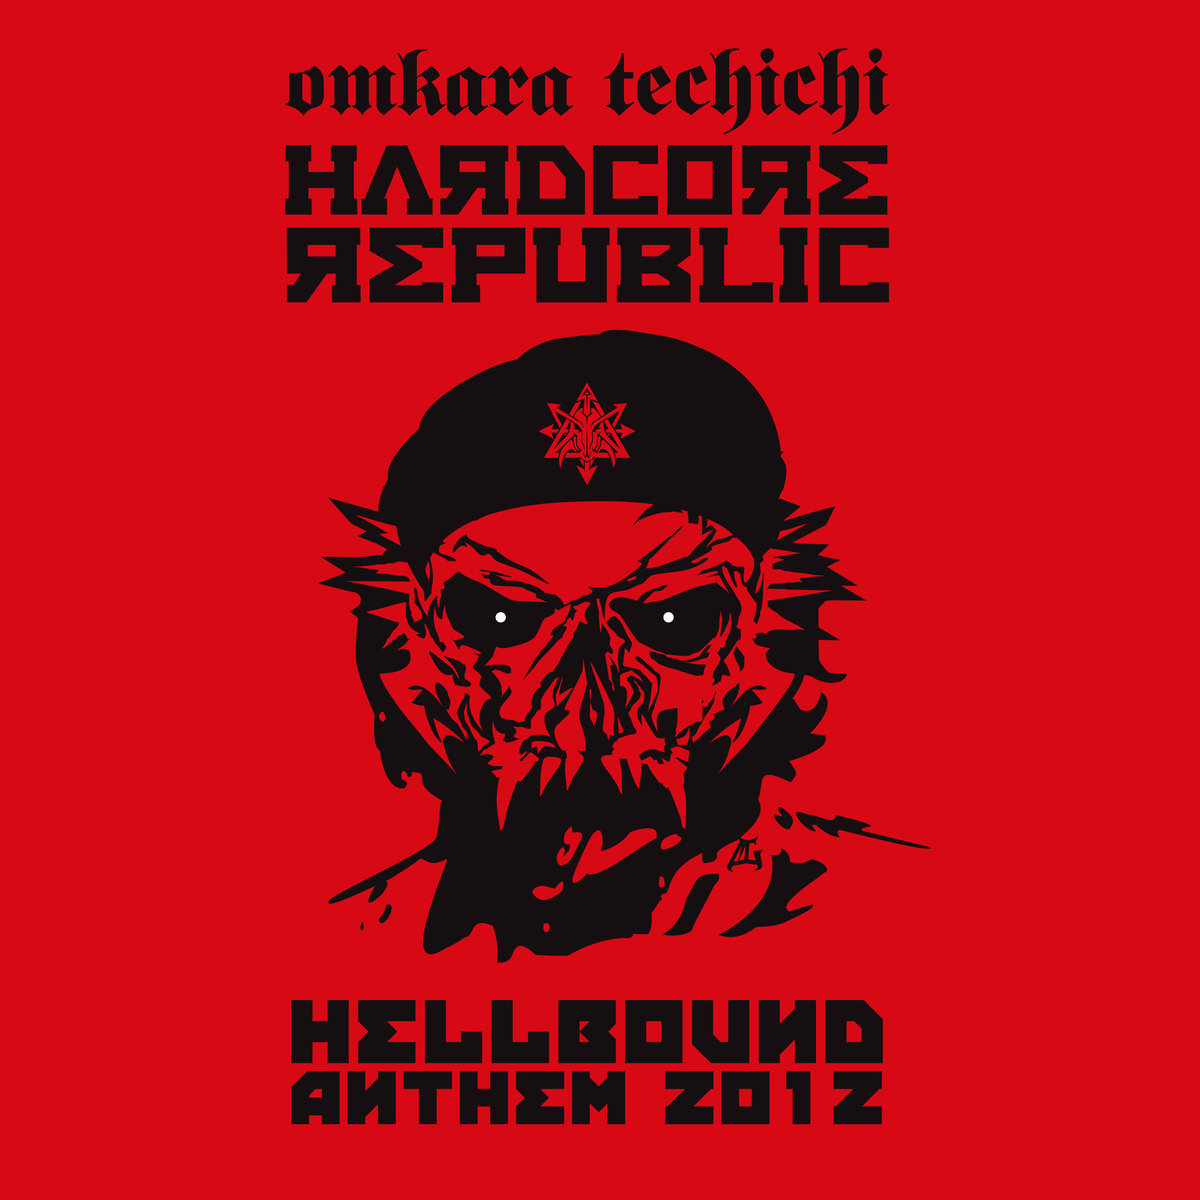 Omkara Techichi - Hardcore Republic (Hellbound Anthem 2012)